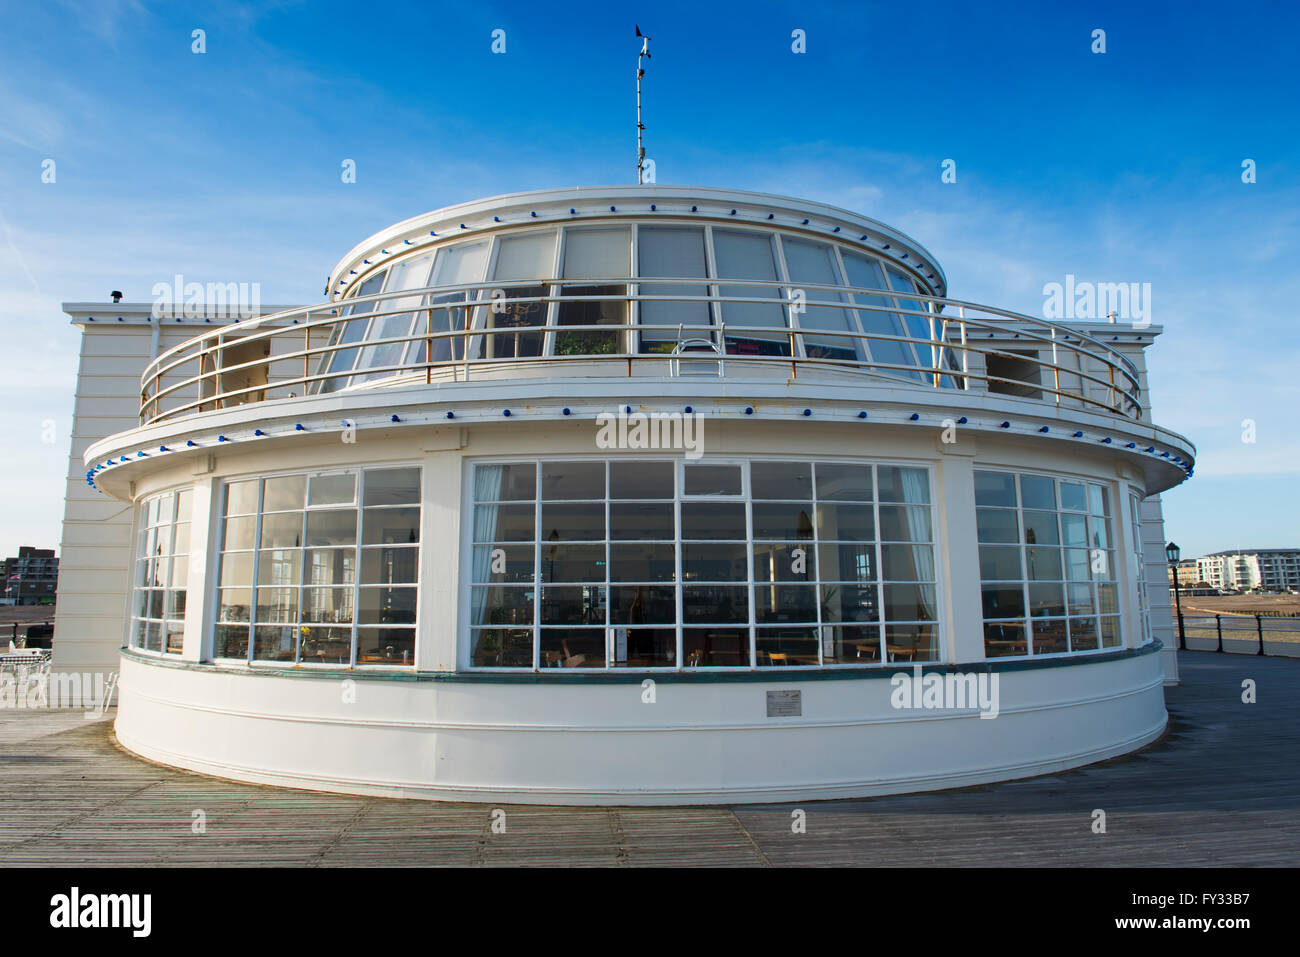 The 1930s Art Deco style Southern Pavilion on Worthing Pier, Worthing, West Sussex, UK - Stock Image